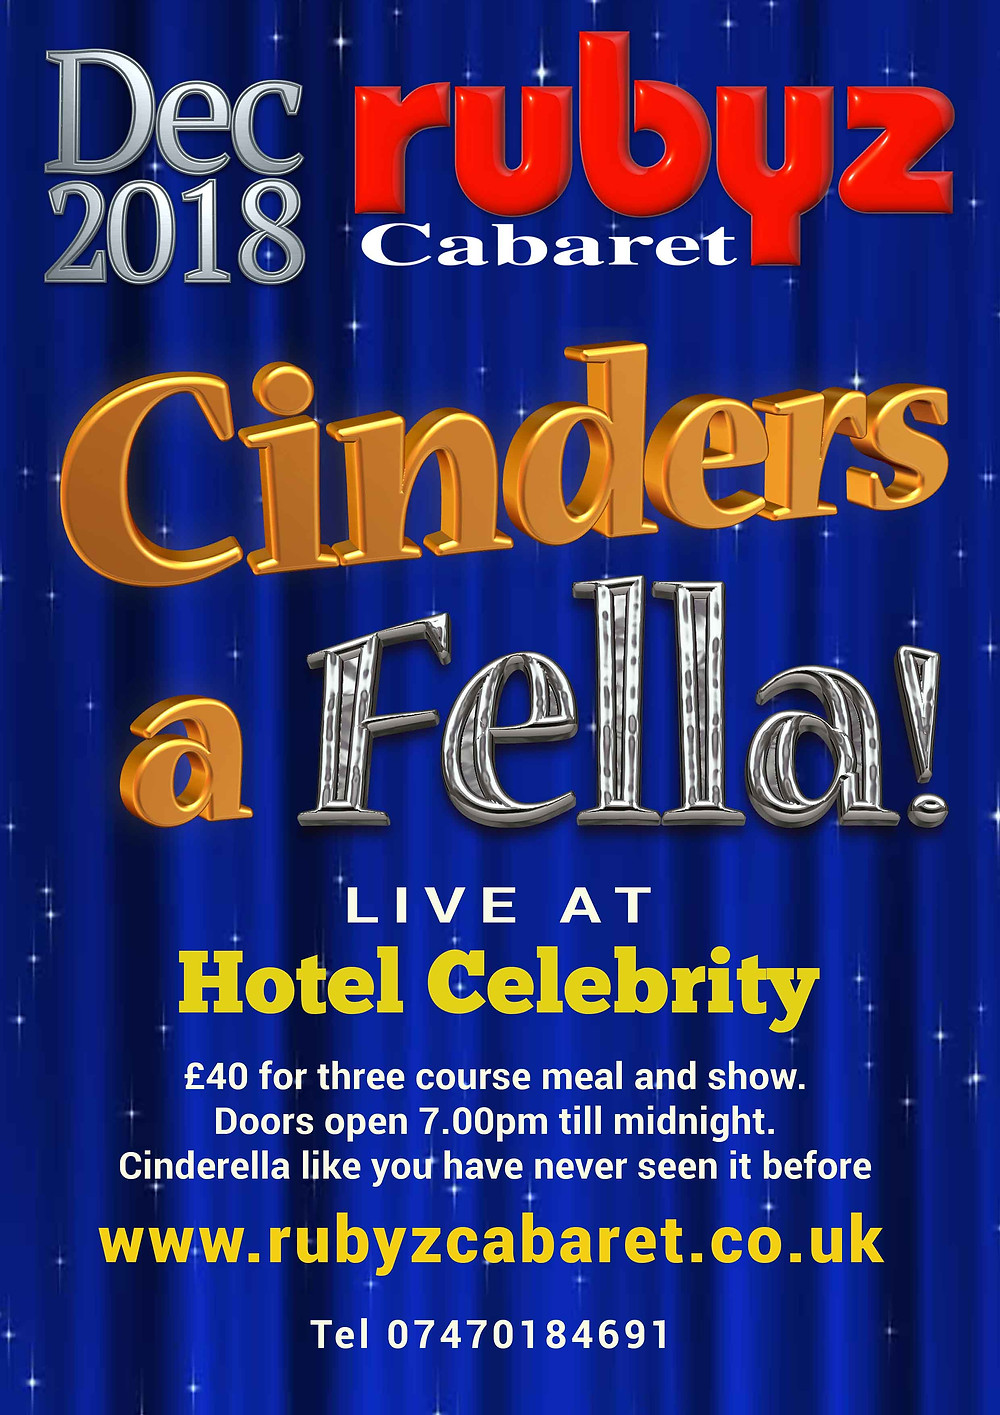 Poster for the 2018 Christmas show at Rubyz Cabaret Ltd